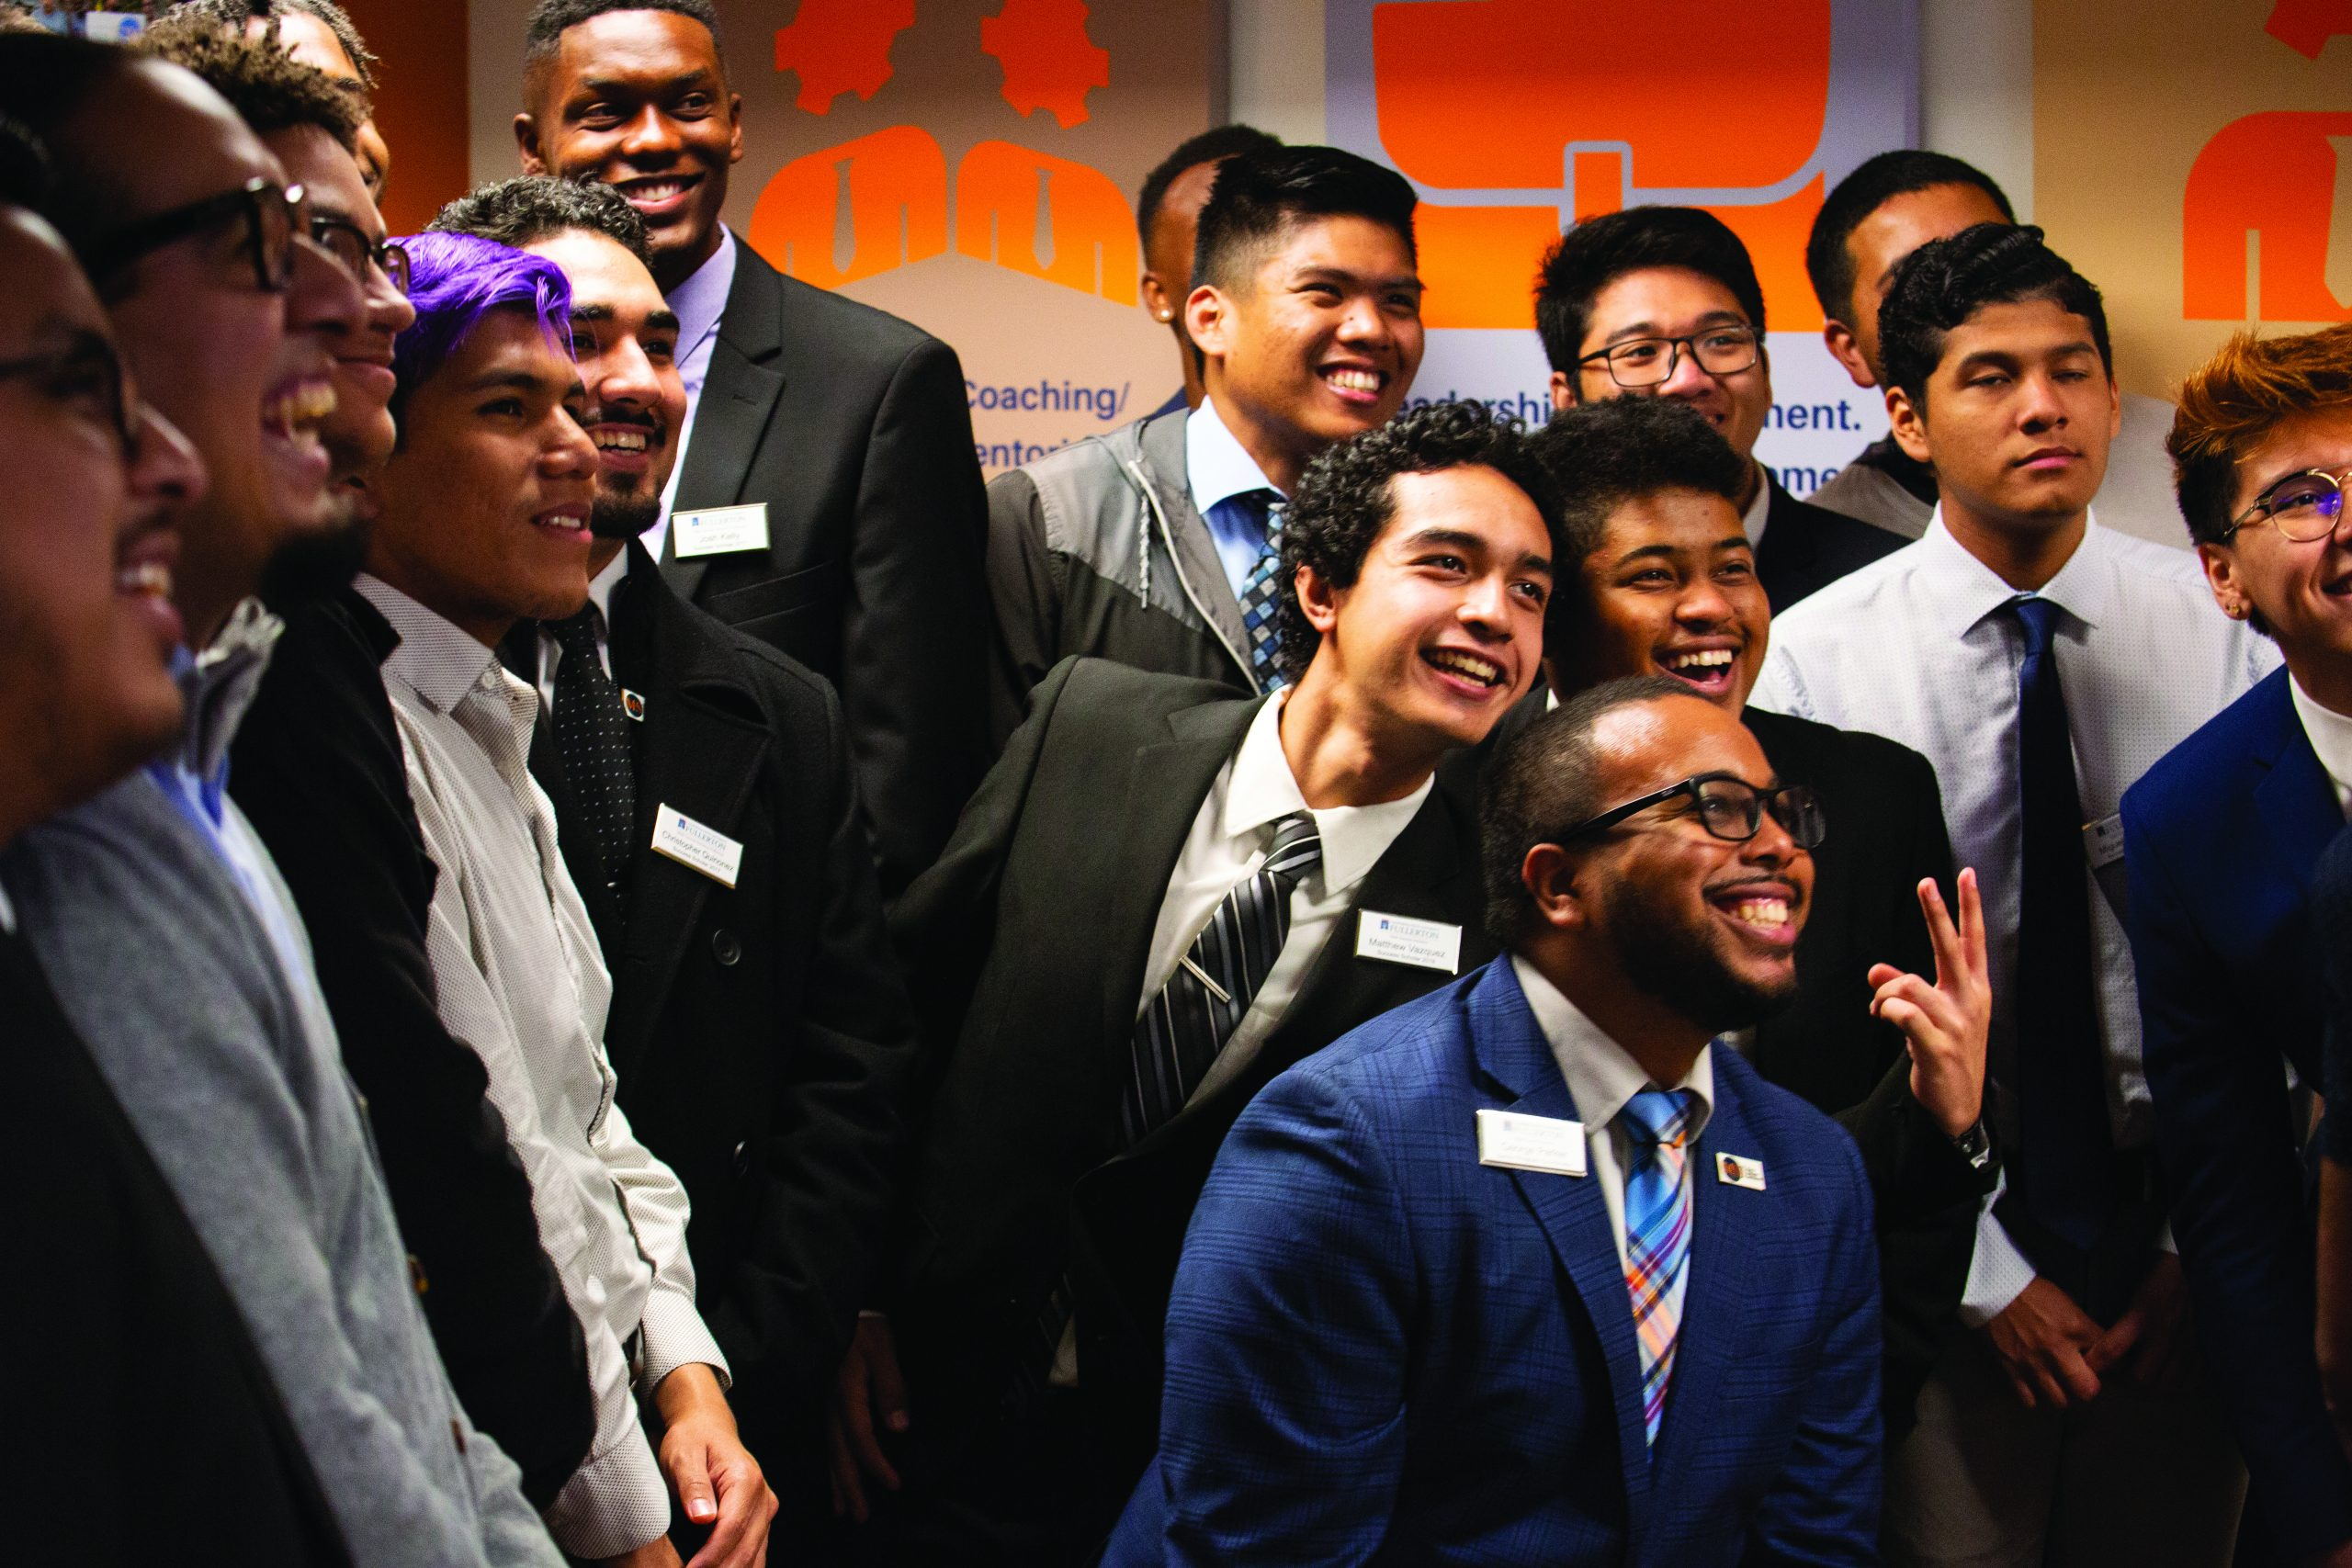 Titans Together: Striving for Justice, Equity, and Inclusion at California State University, Fullerton